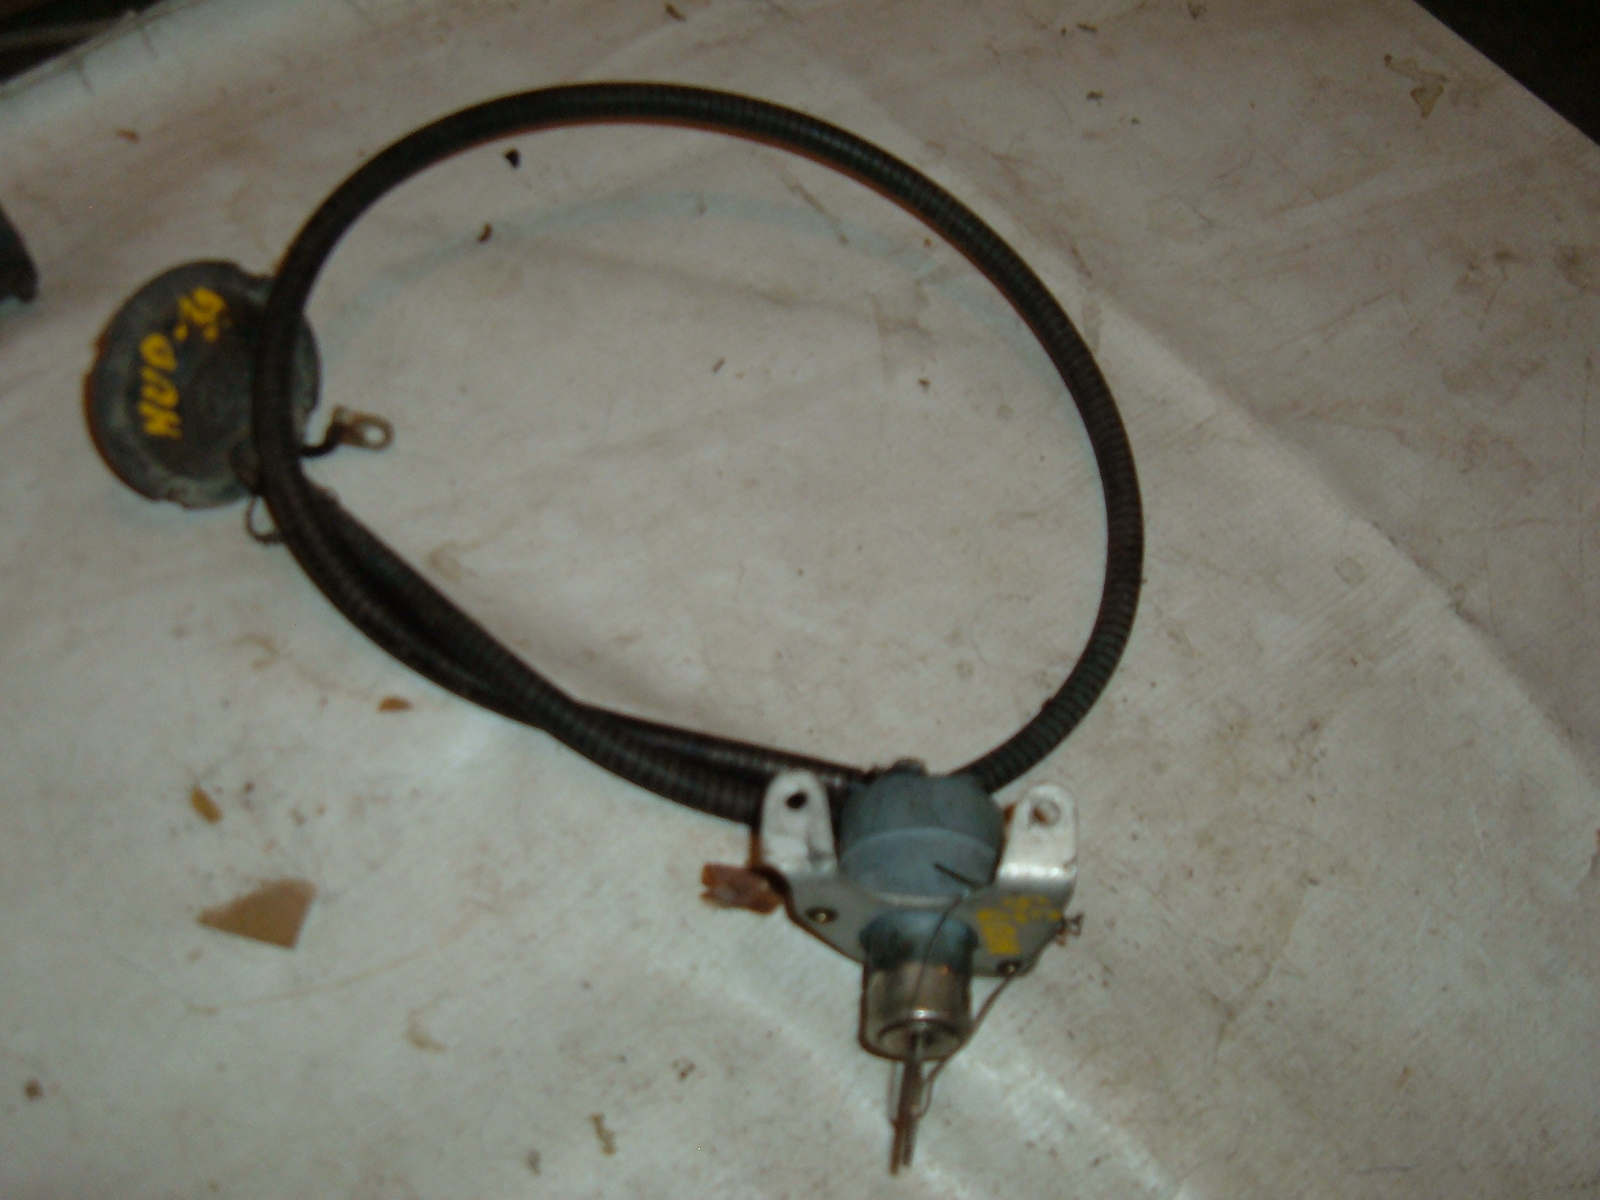 1939 40 41 hudson ignition switch w/ key (z 39-41hudsonigsw)